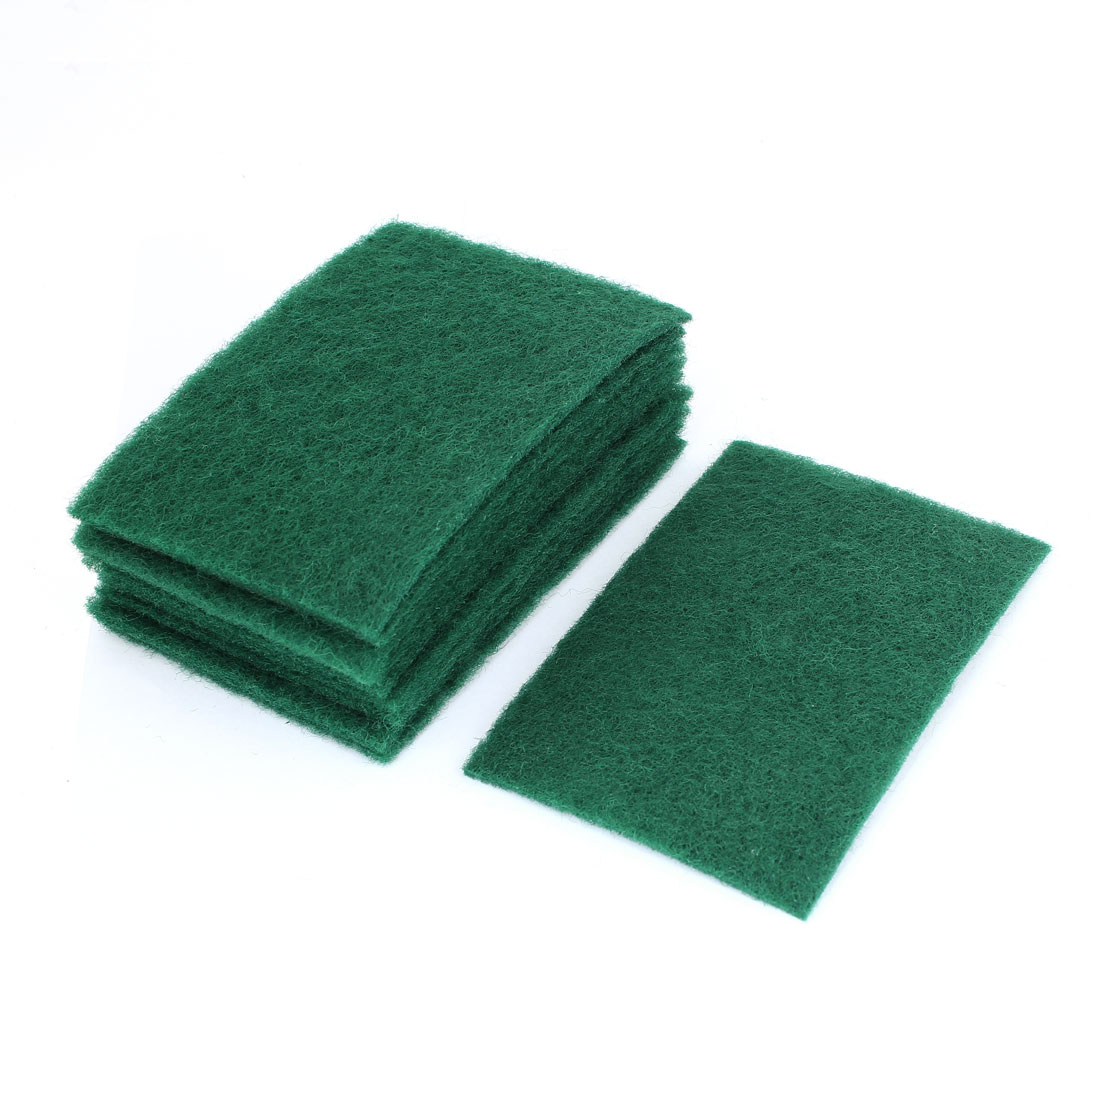 10 Pcs Green Rectangle Shaped Cleaning Pads Scourers